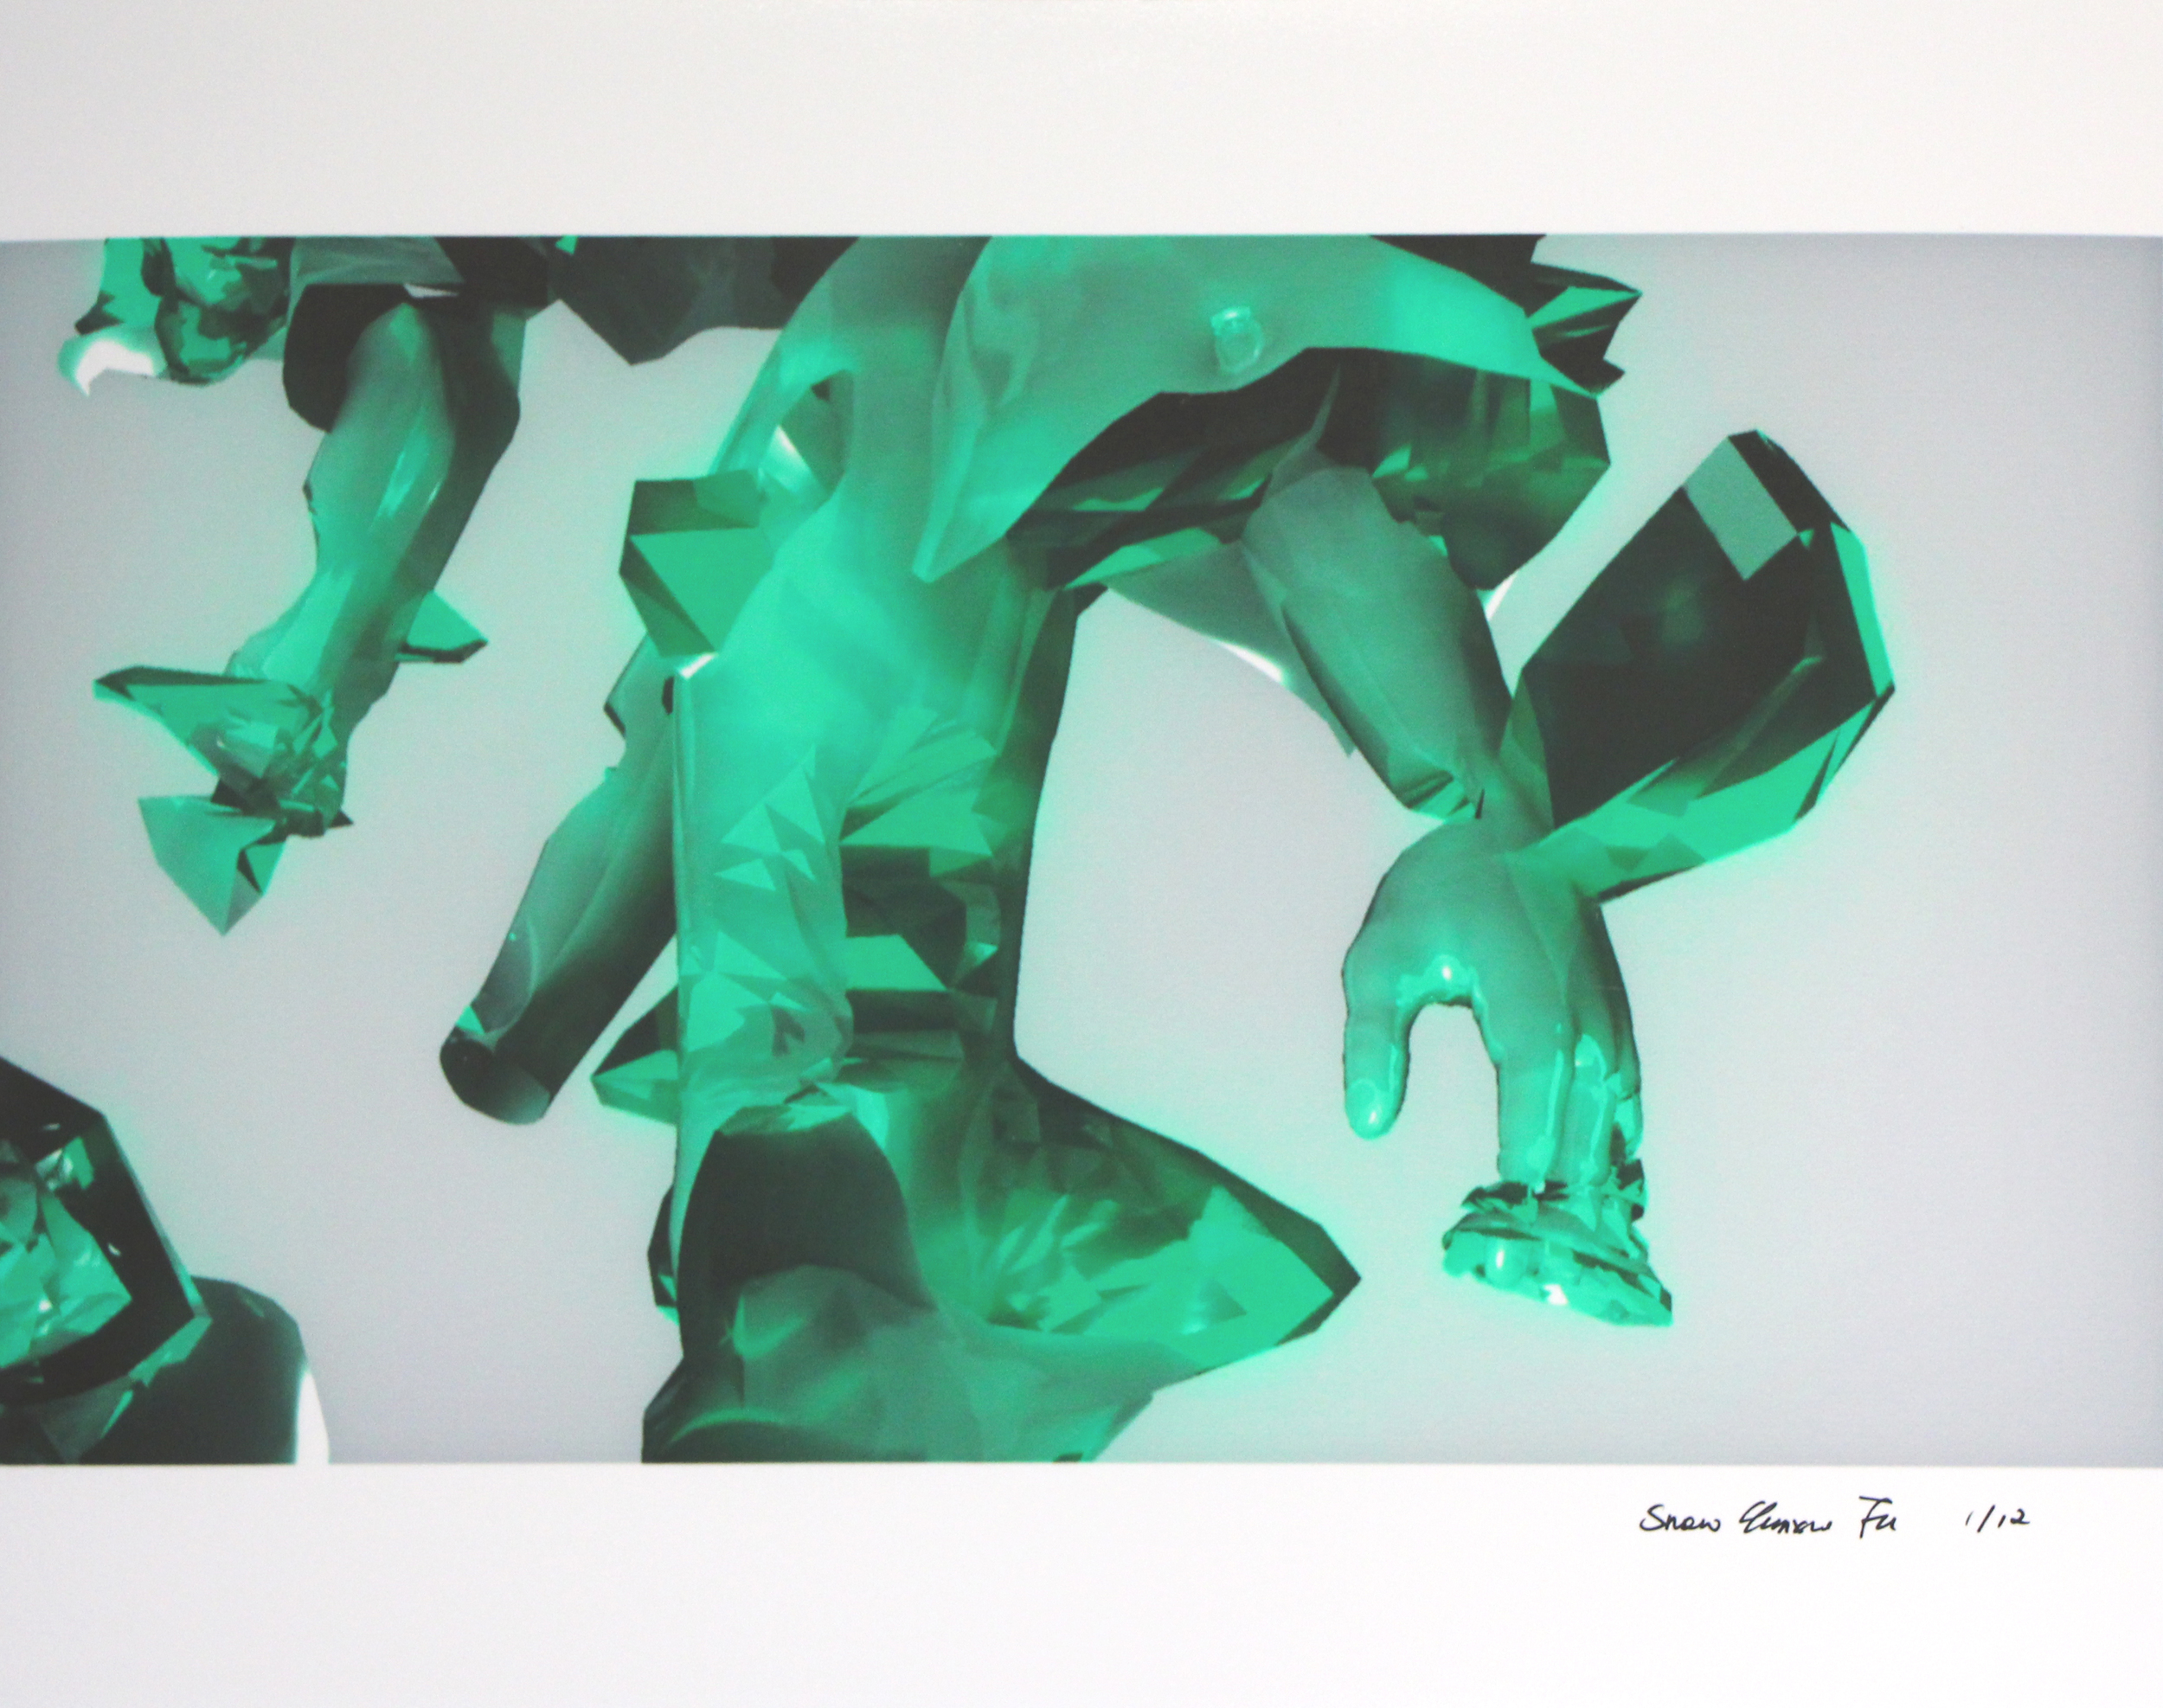 Snow Yunxue Fu    The percept, 2014   inkjet print on llford smooth gloss paper    6 x 11 inches    edition of 12